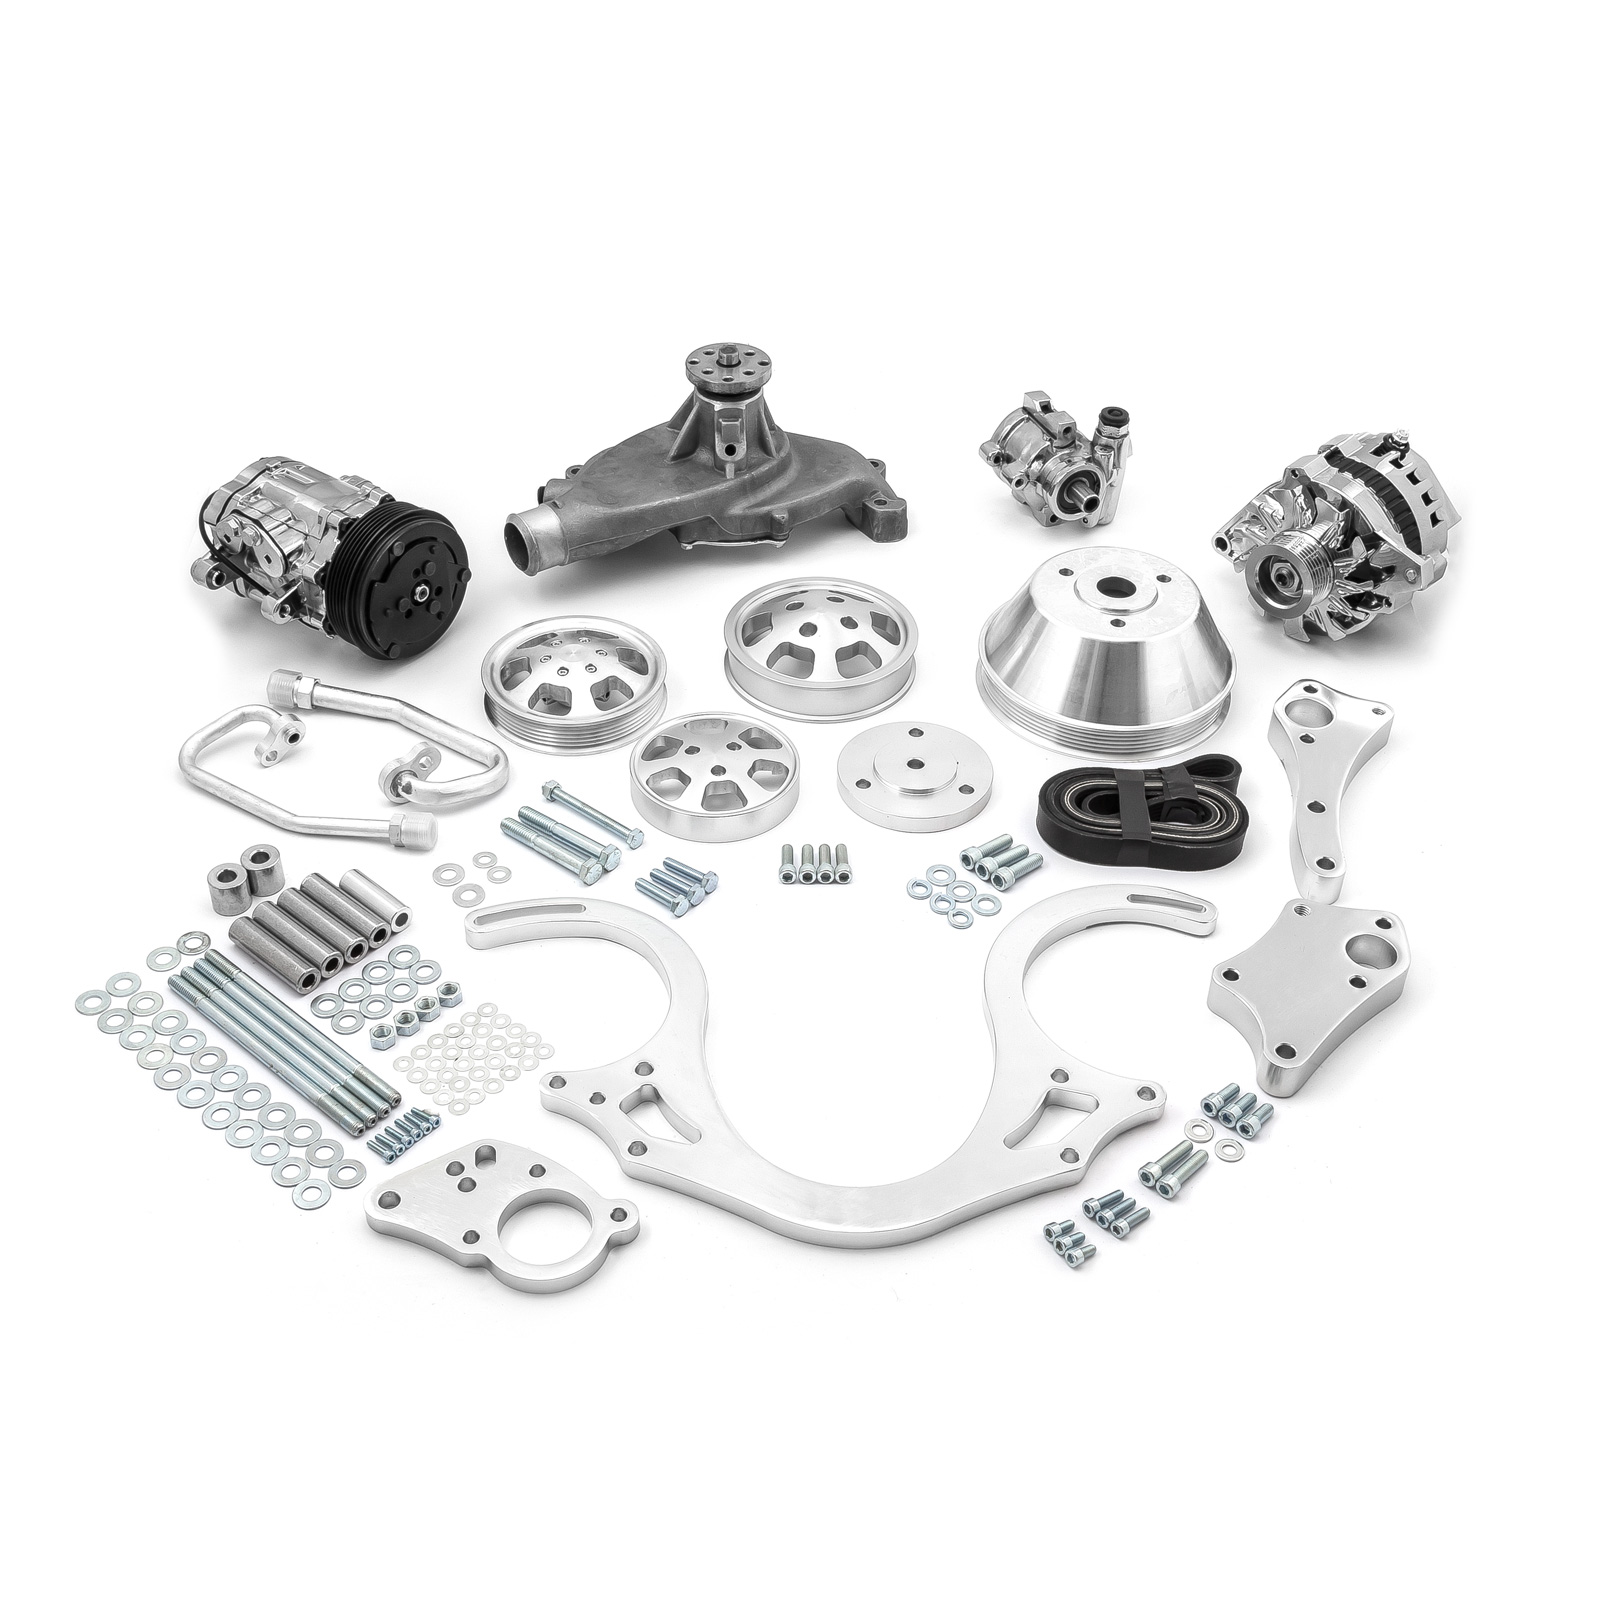 PCE® PCE415.1024 Chevy BBC 454 Aluminum Serpentine Complete Engine Pulley & Components Kit